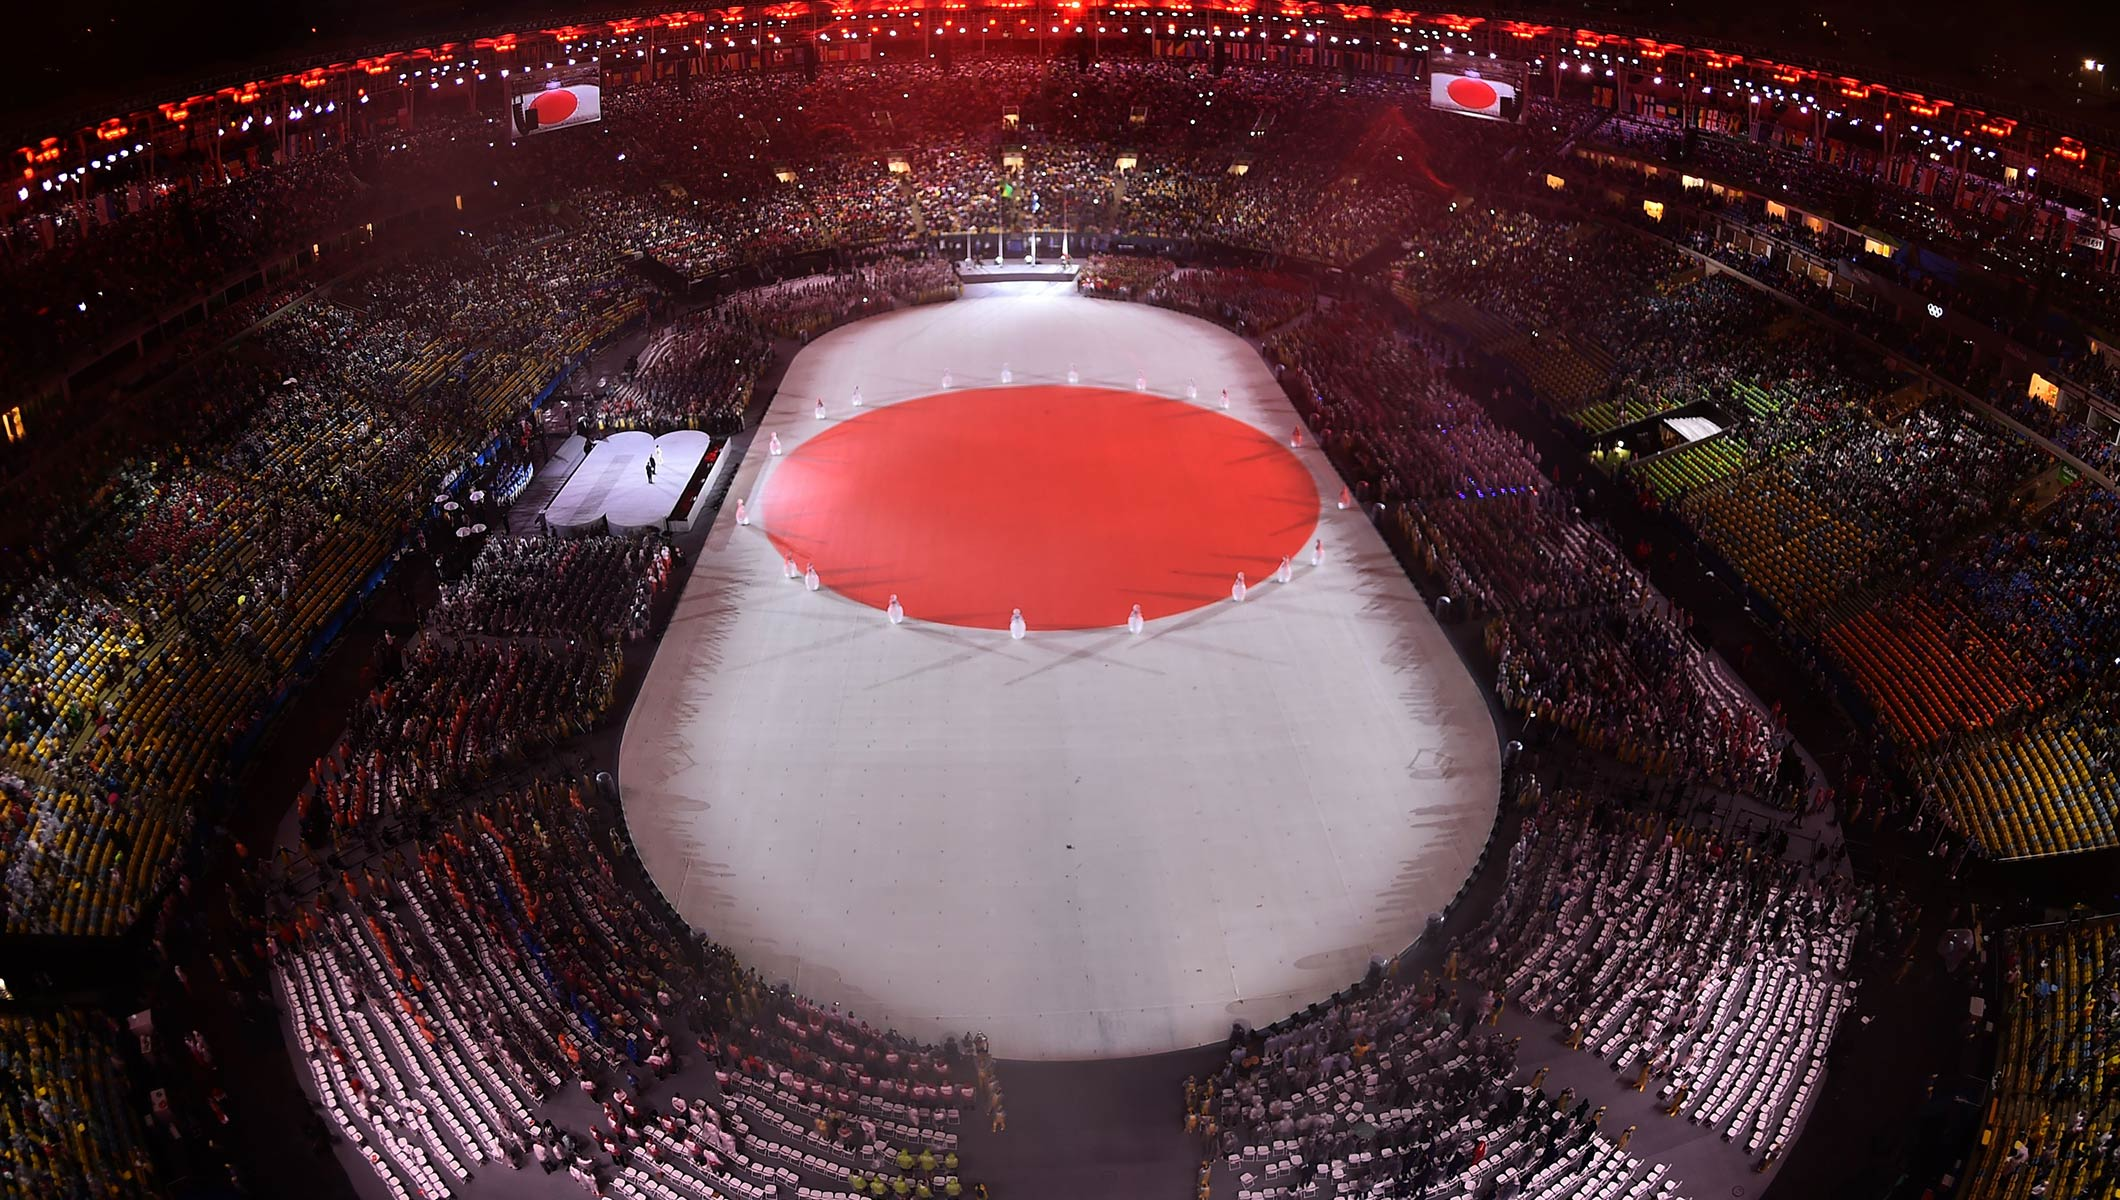 Tokyo 2020 at the Rio 2016 Closing Ceremony